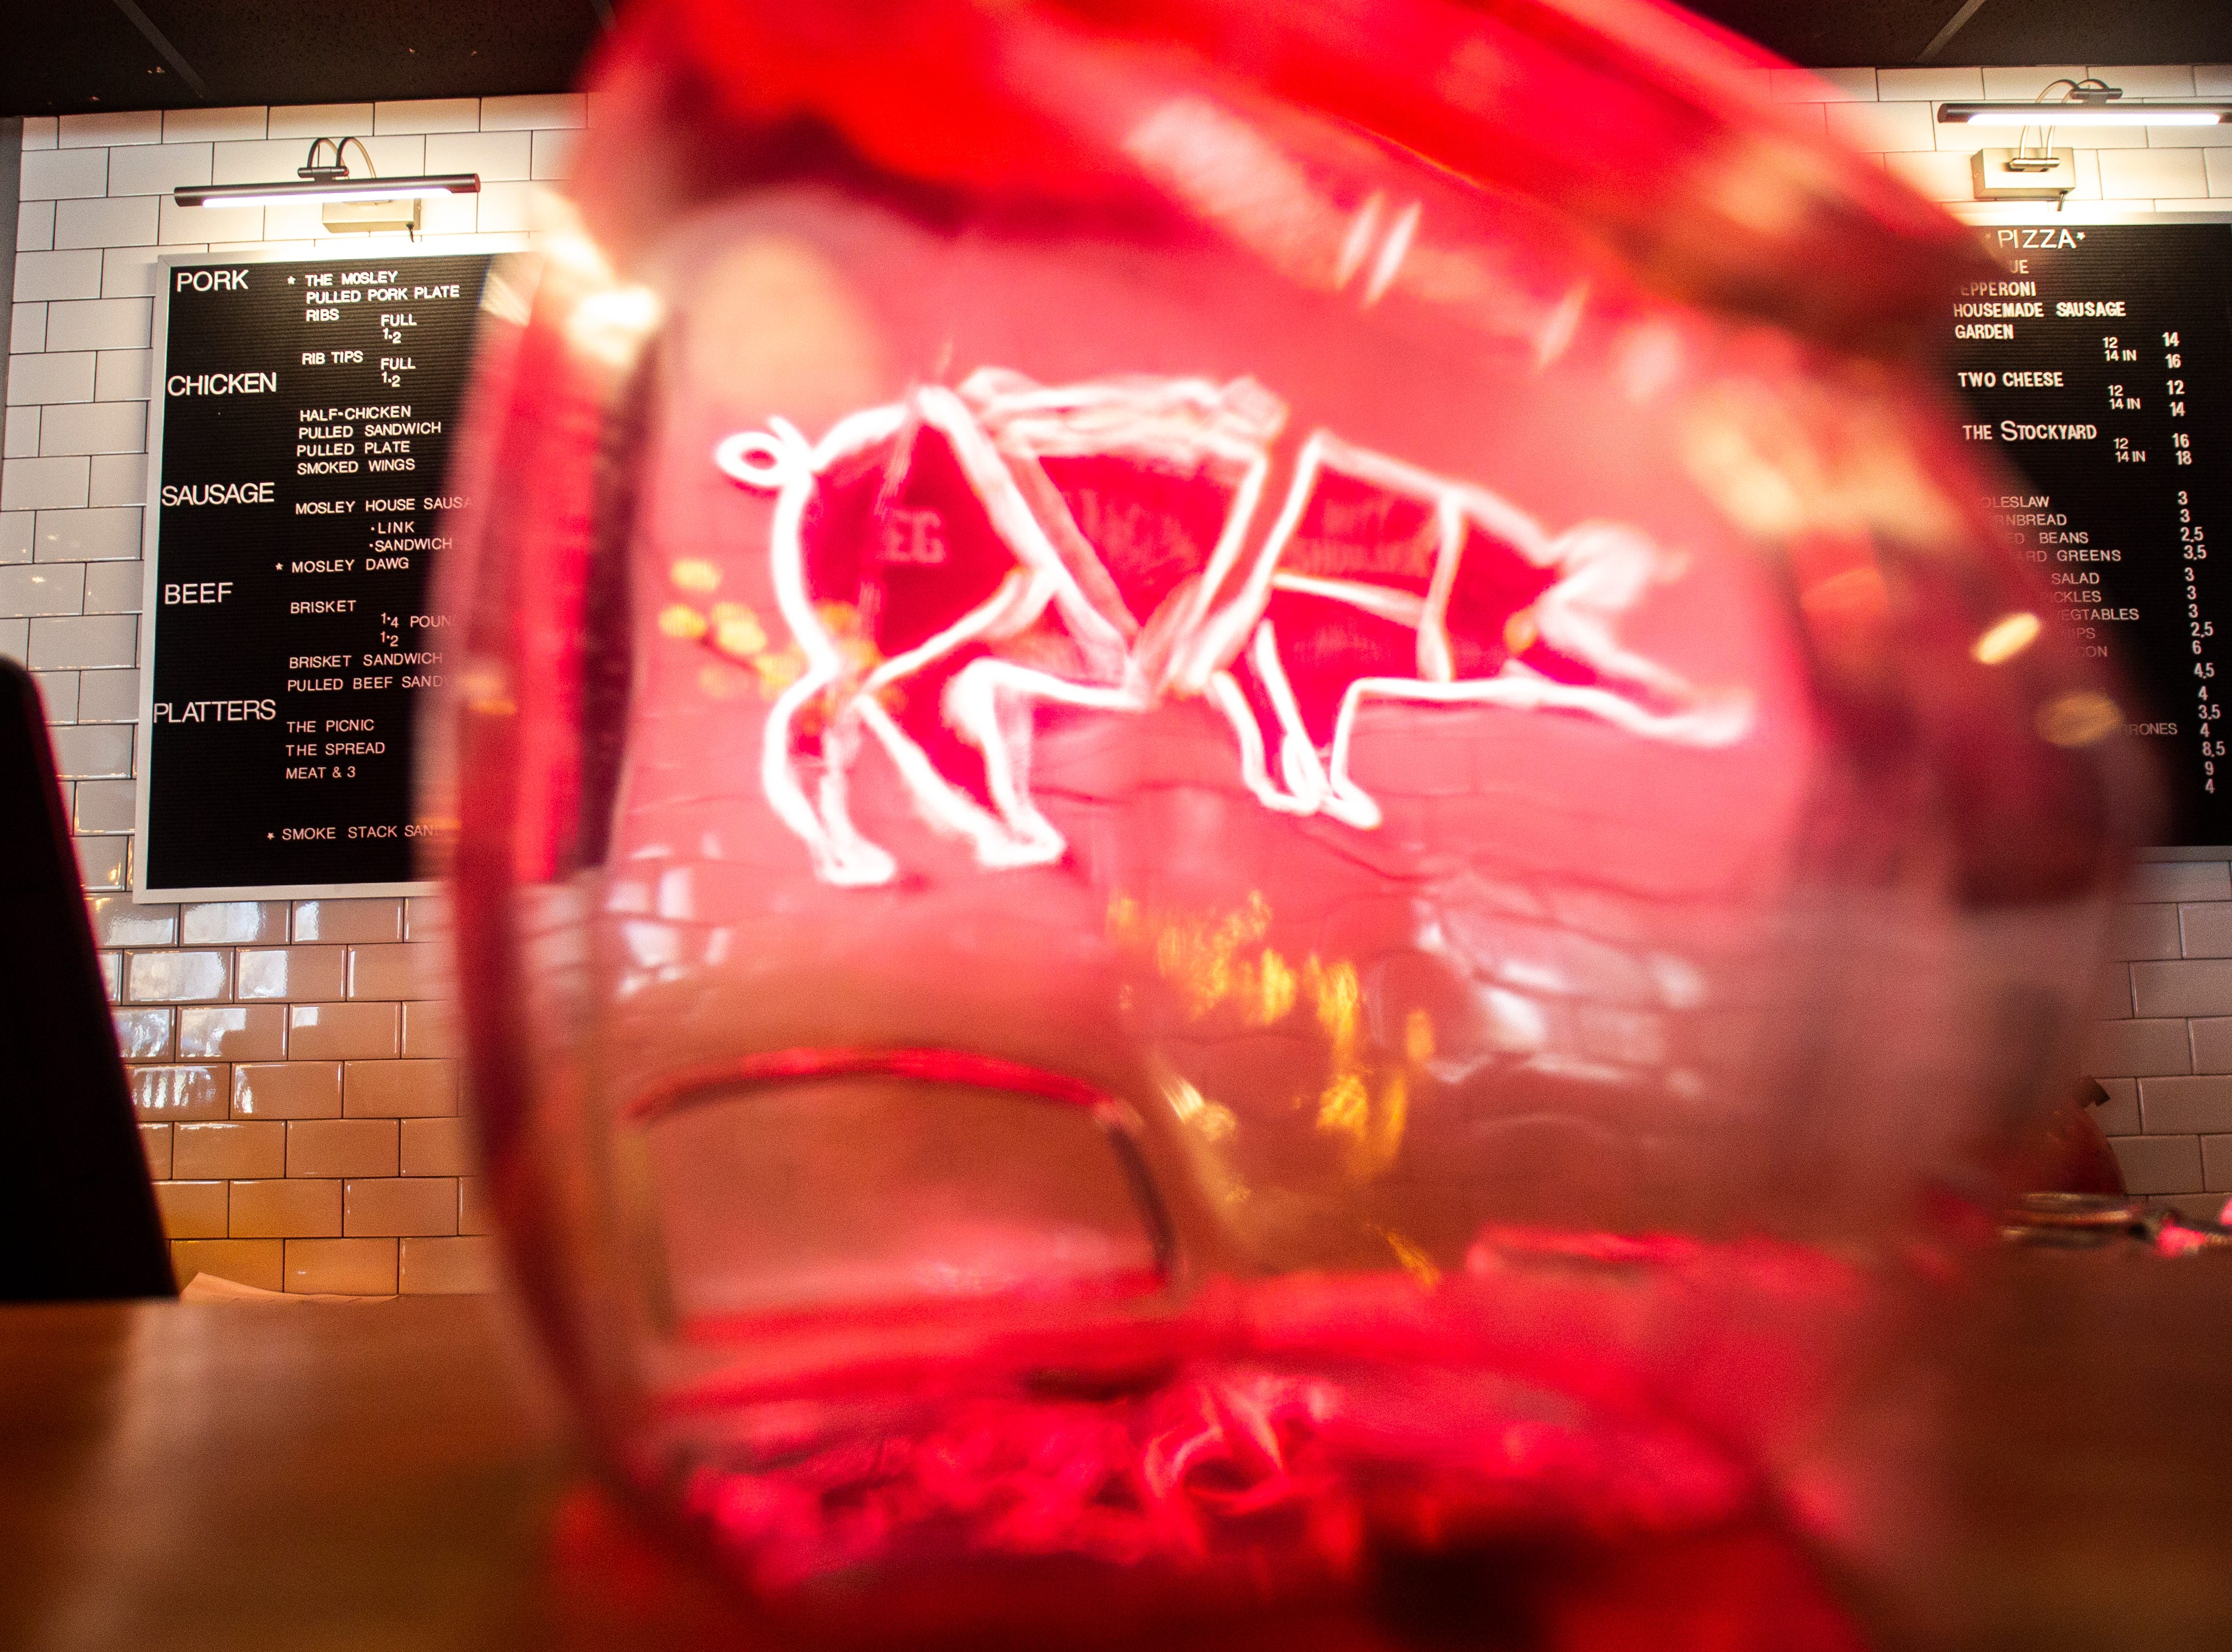 A neon sign in the shape of a pig is seen through a tip jar at the counter on Wednesday, Nov. 21, 2018, at Mosley's Barbecue and Provisions in North Liberty.